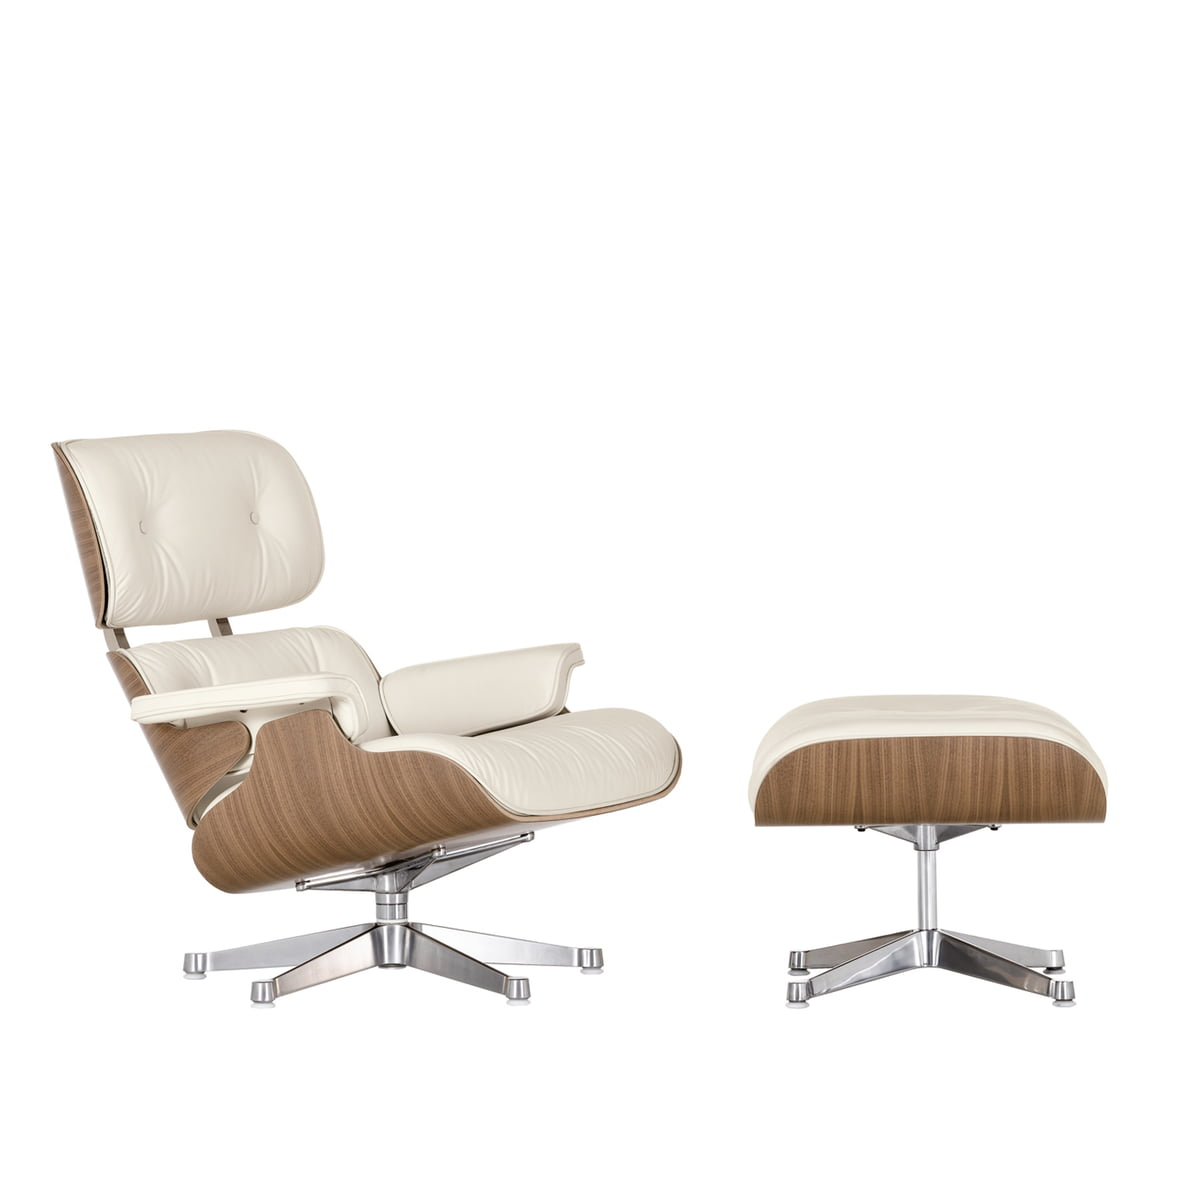 Fantastic Vitra Eames Lounge Chair Ottoman White Polished Walnut Classic Inzonedesignstudio Interior Chair Design Inzonedesignstudiocom